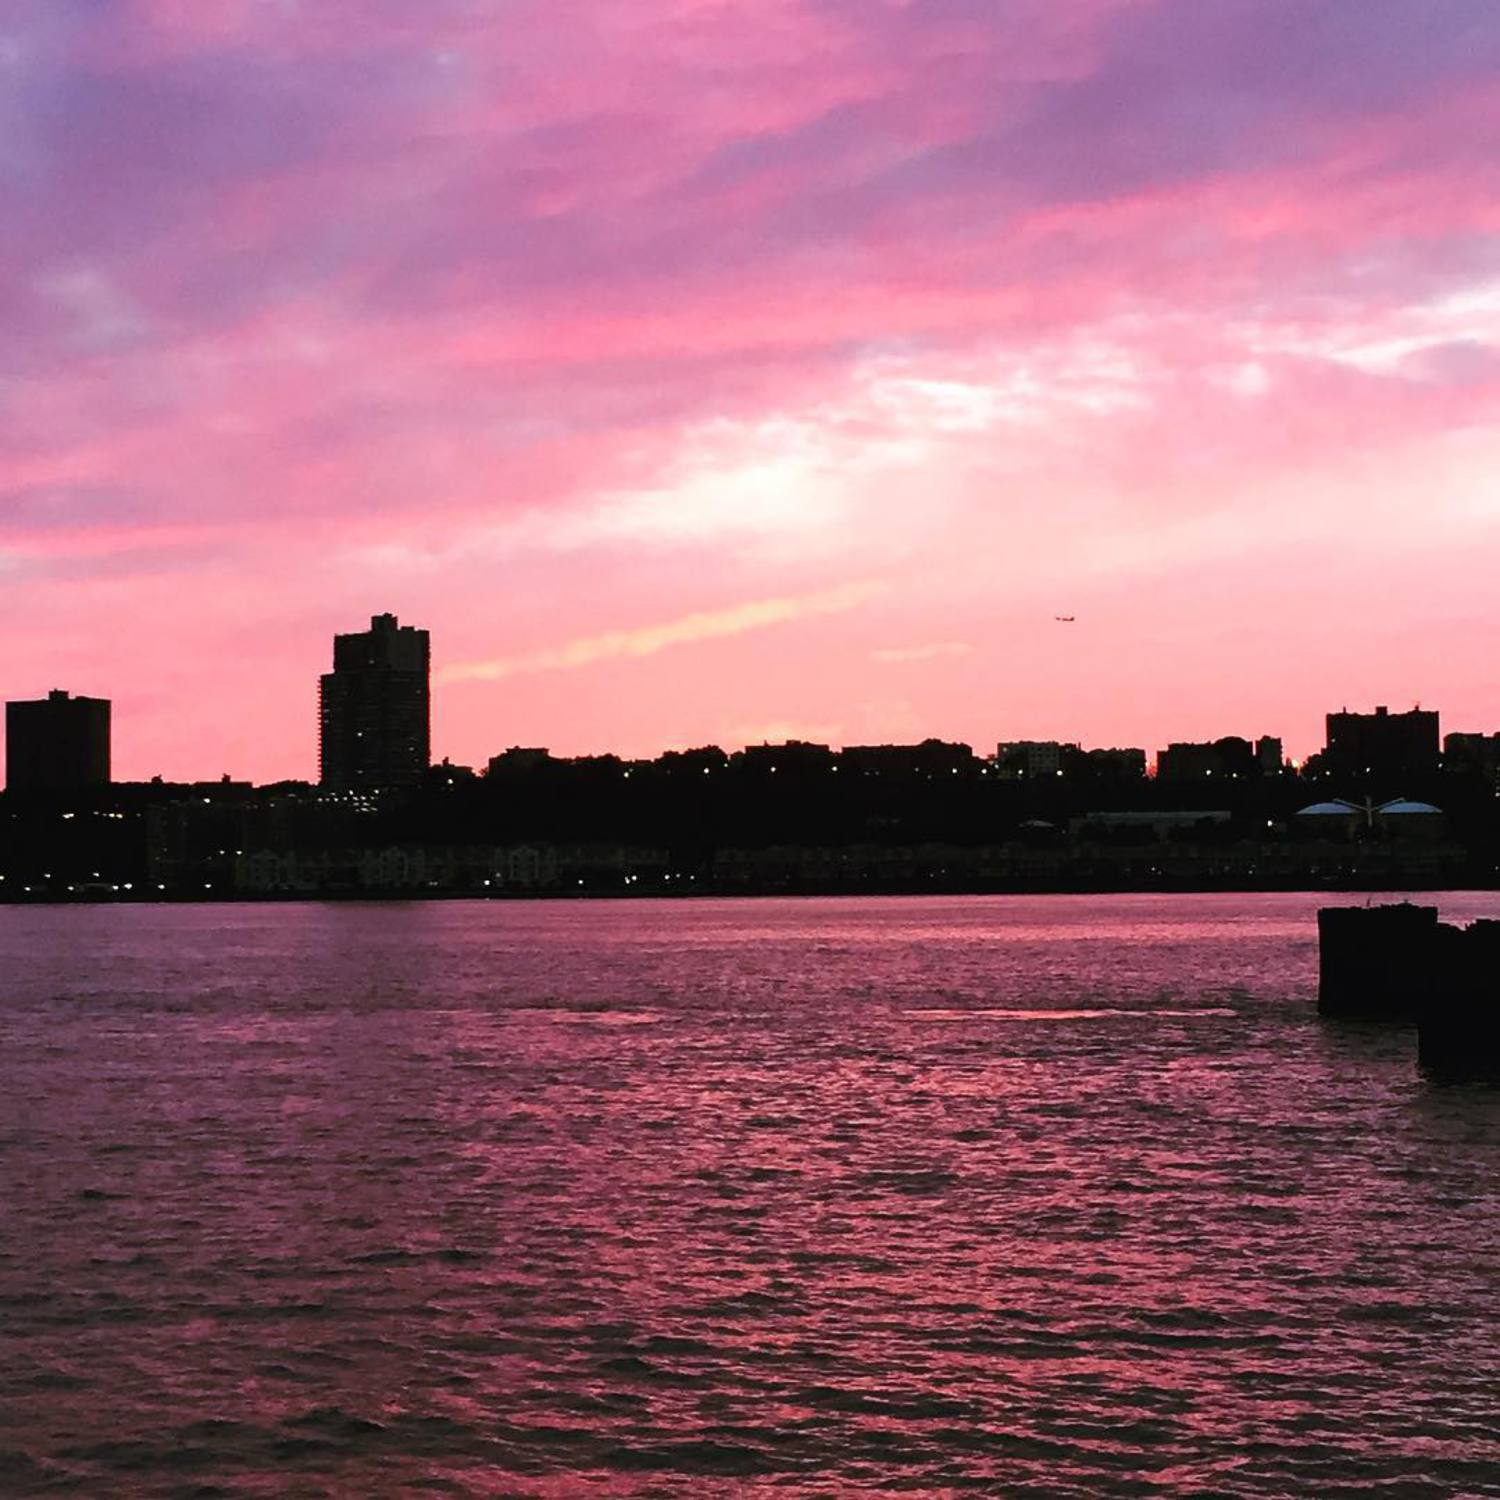 Sunsets with @kristicabe are the best! #UWS #NYC #riversidepark